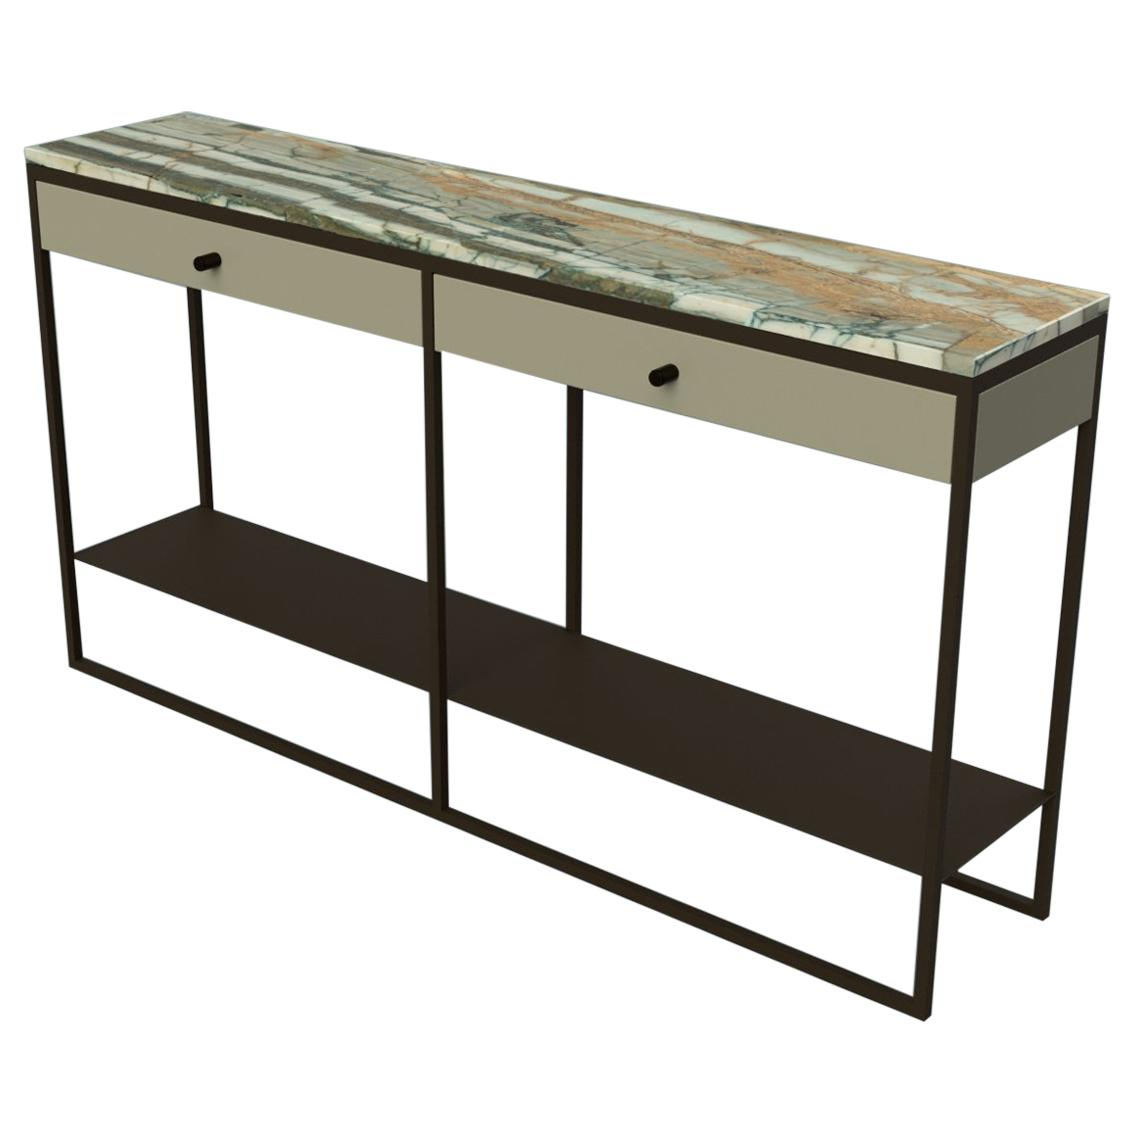 Long Console Tables – 327 For Sale On 1Stdibs In Mix Patina Metal Frame Console Tables (View 29 of 30)